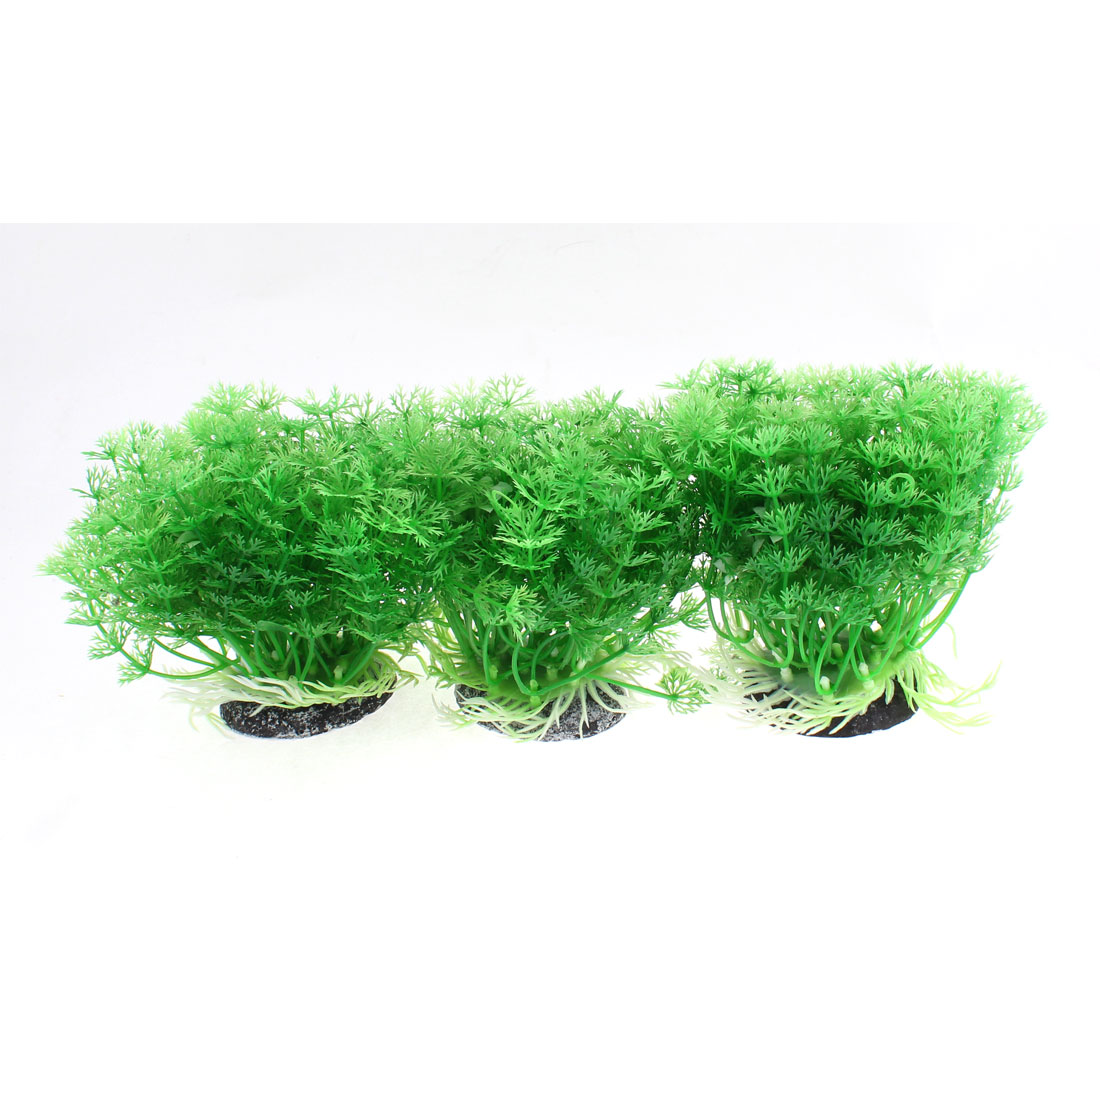 Aquarium Emulational Underwater Grass Plant Ornament 10.5cm Height 3pcs